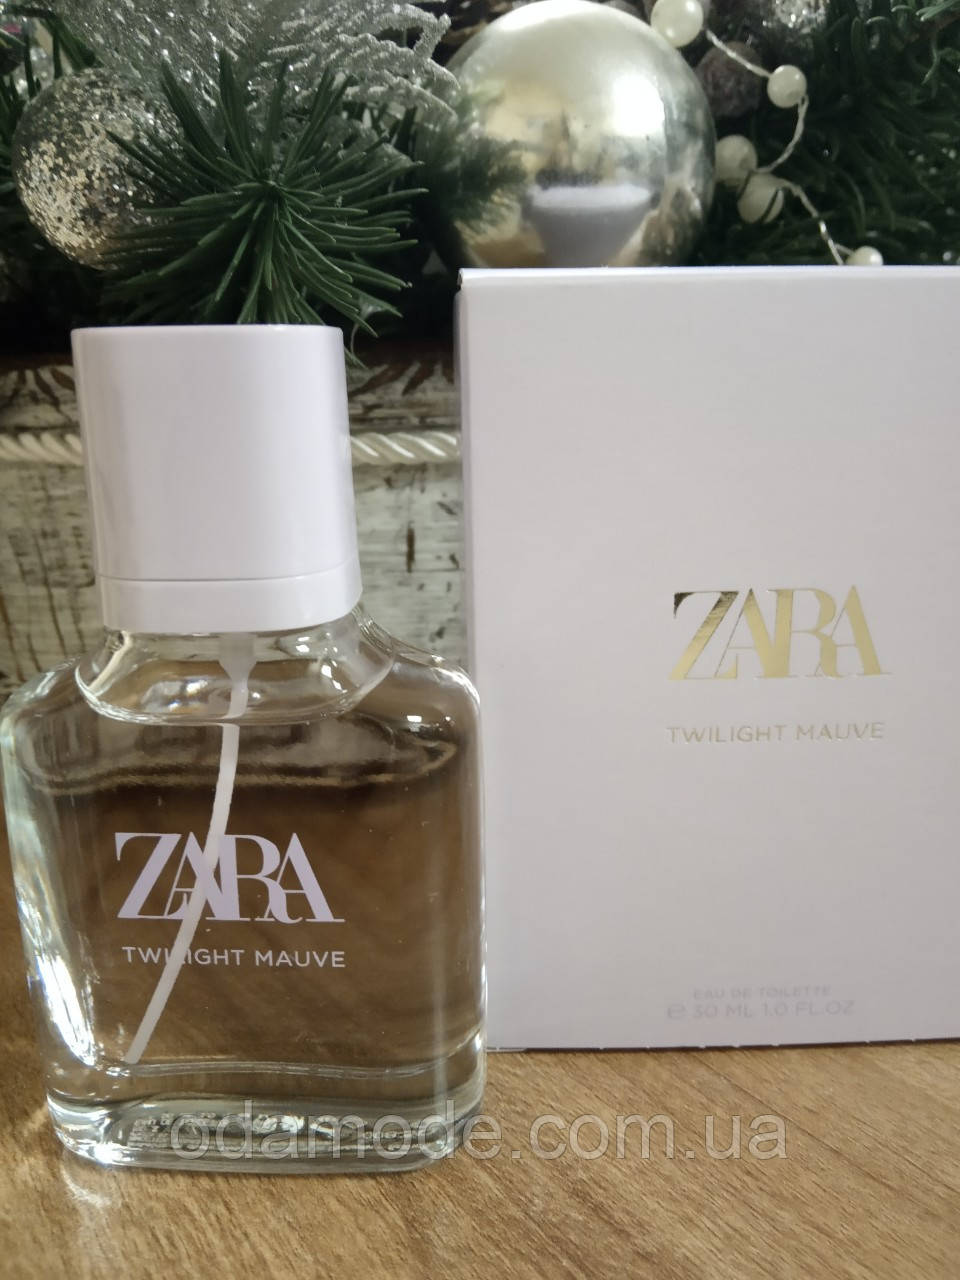 Духи Zara Twilight Mauve edt 30ml (Испания)